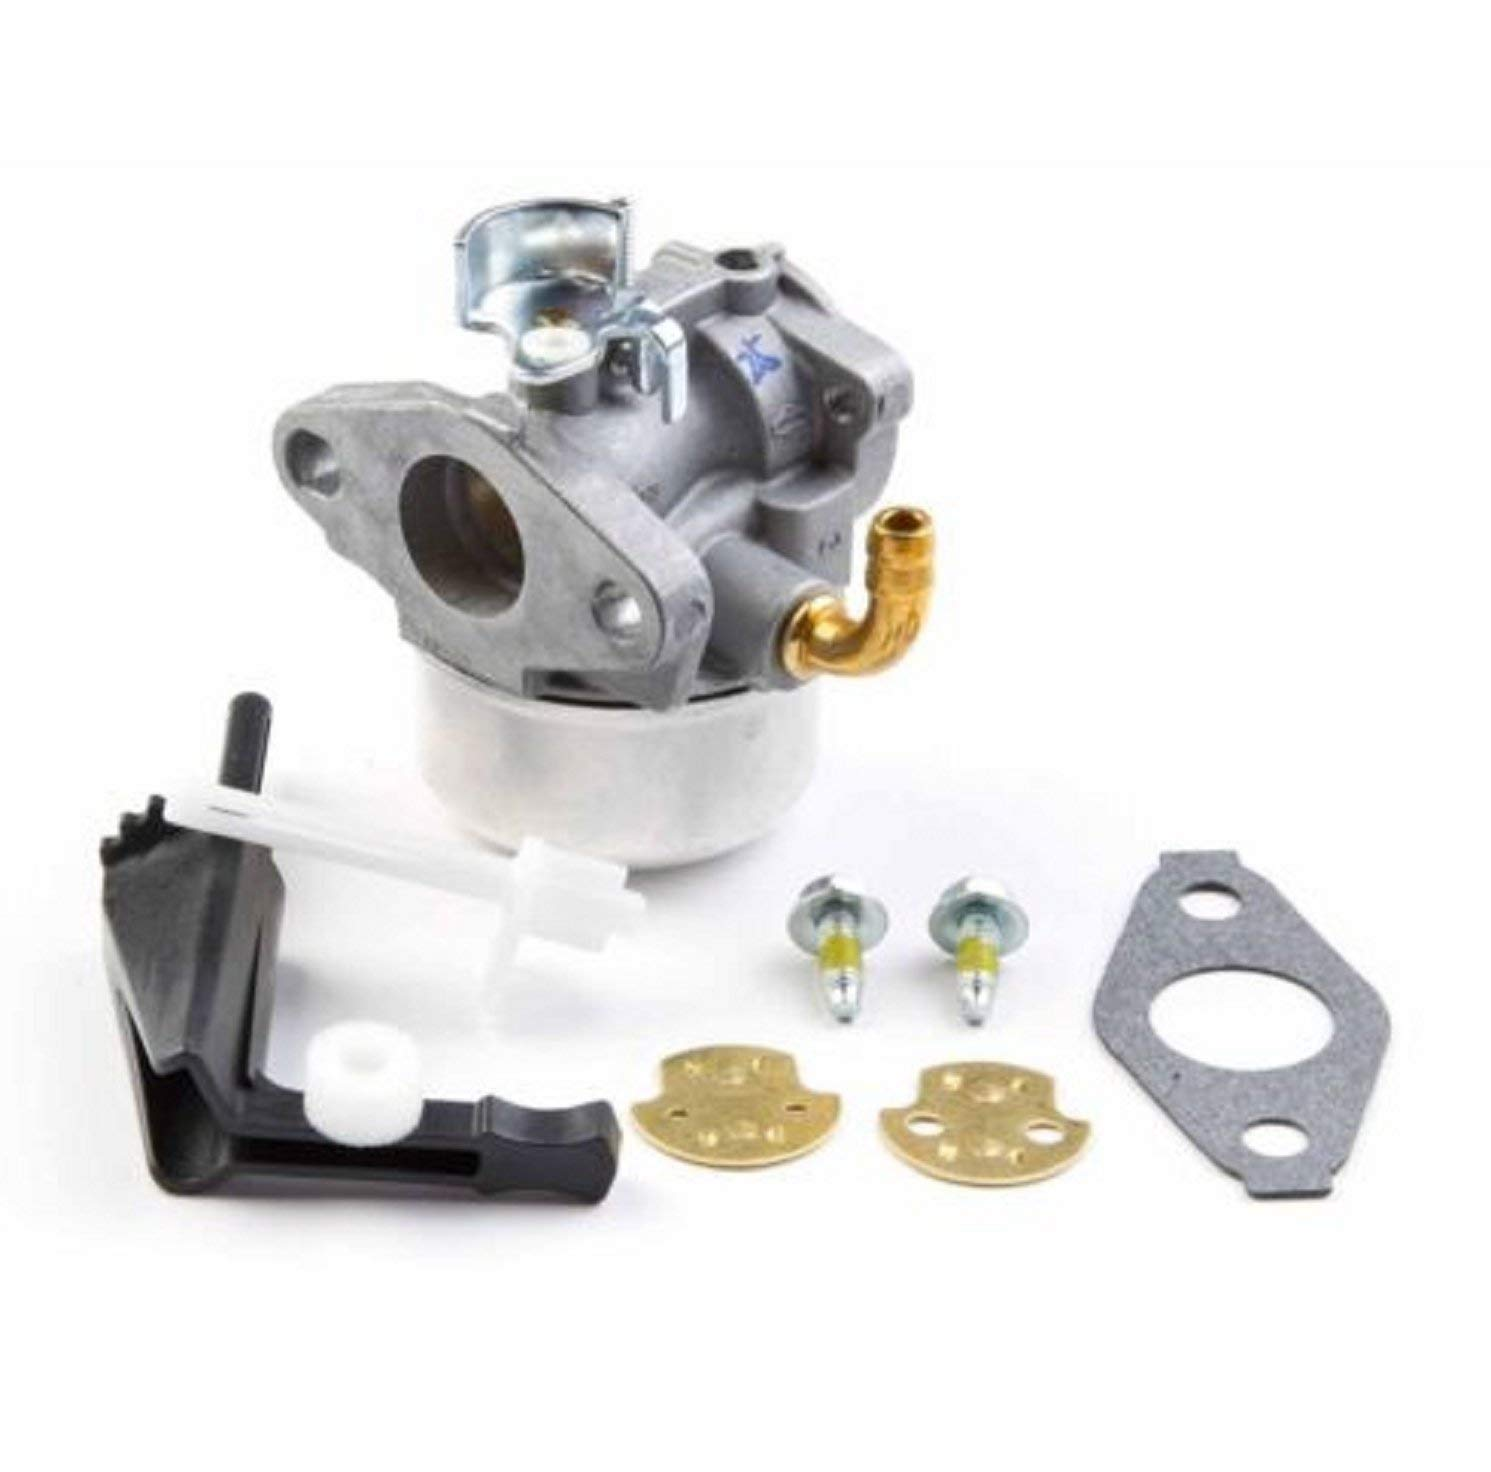 USA Premium Store Carburetor For Briggs &Stratton 798653 697354 790290 791077 698860